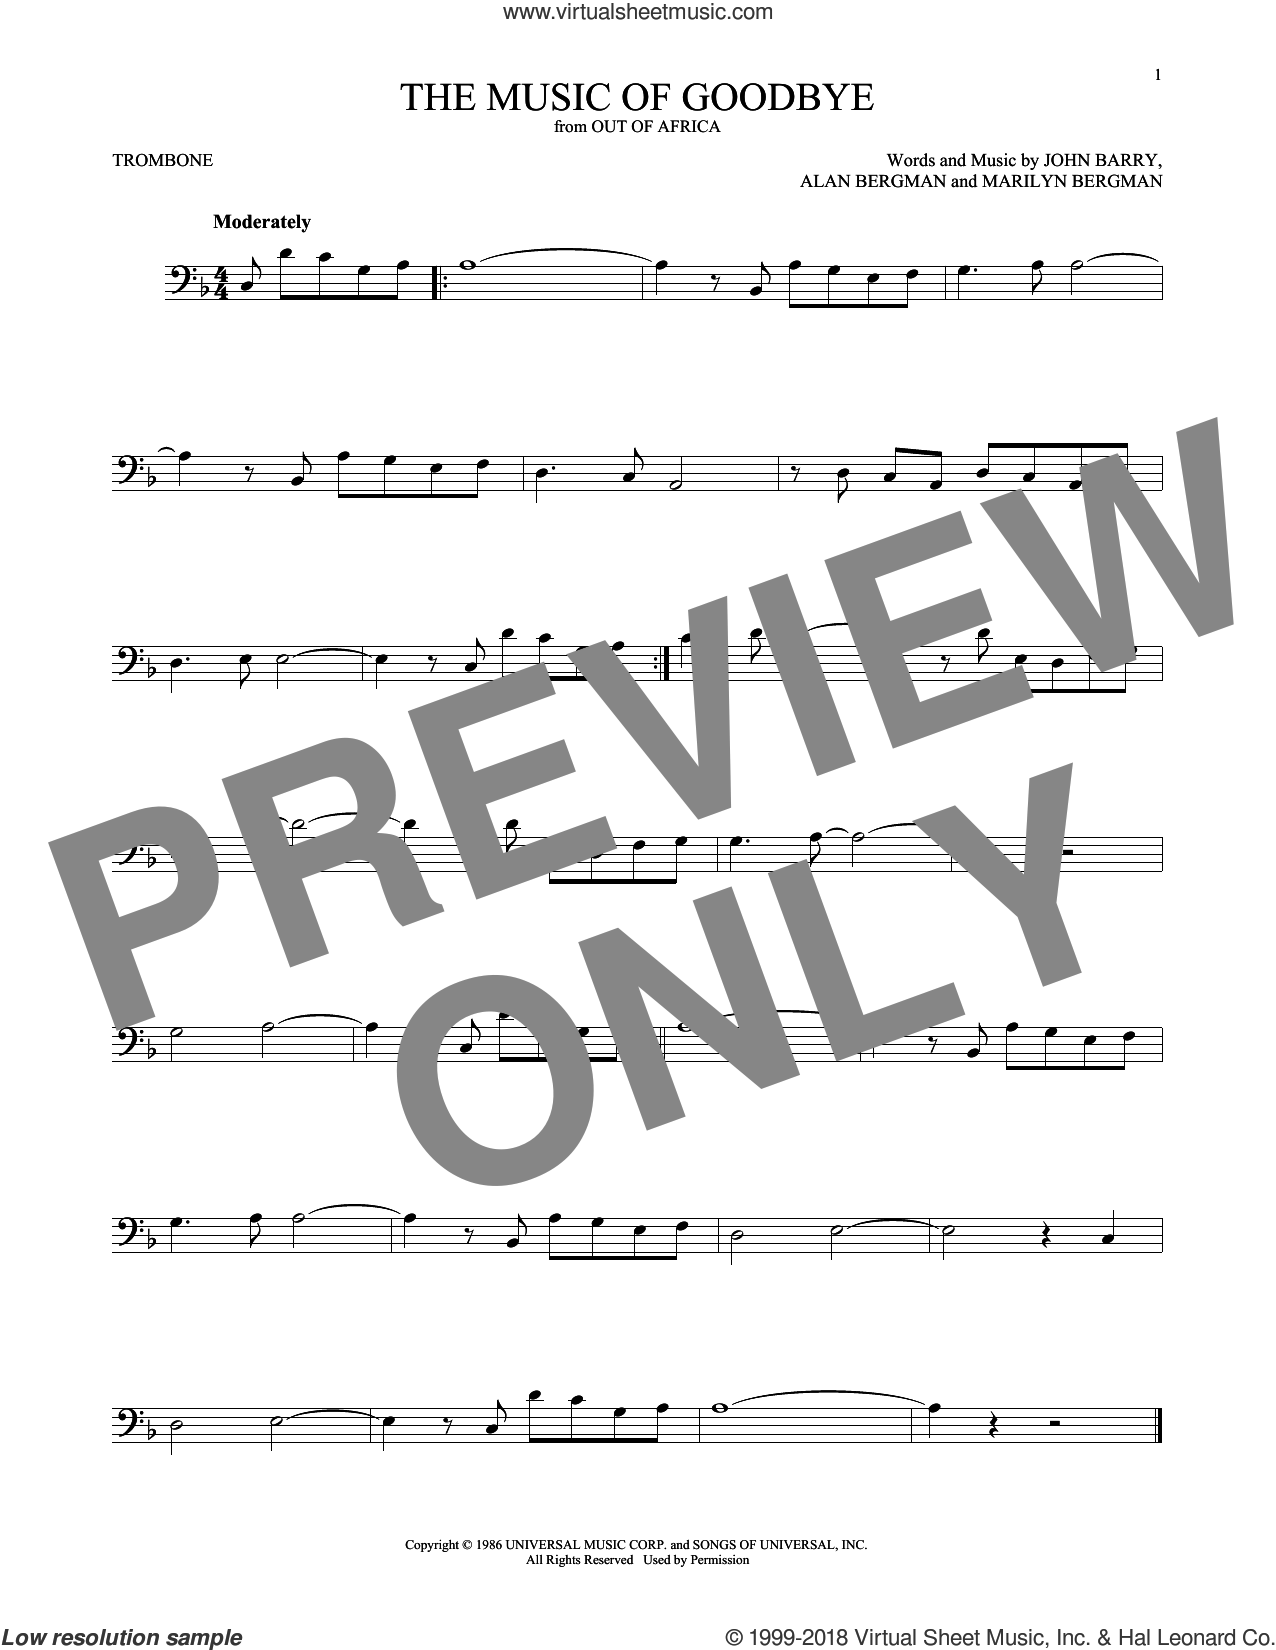 The Music Of Goodbye sheet music for trombone solo by John Barry, Alan Bergman and Marilyn Bergman, intermediate skill level